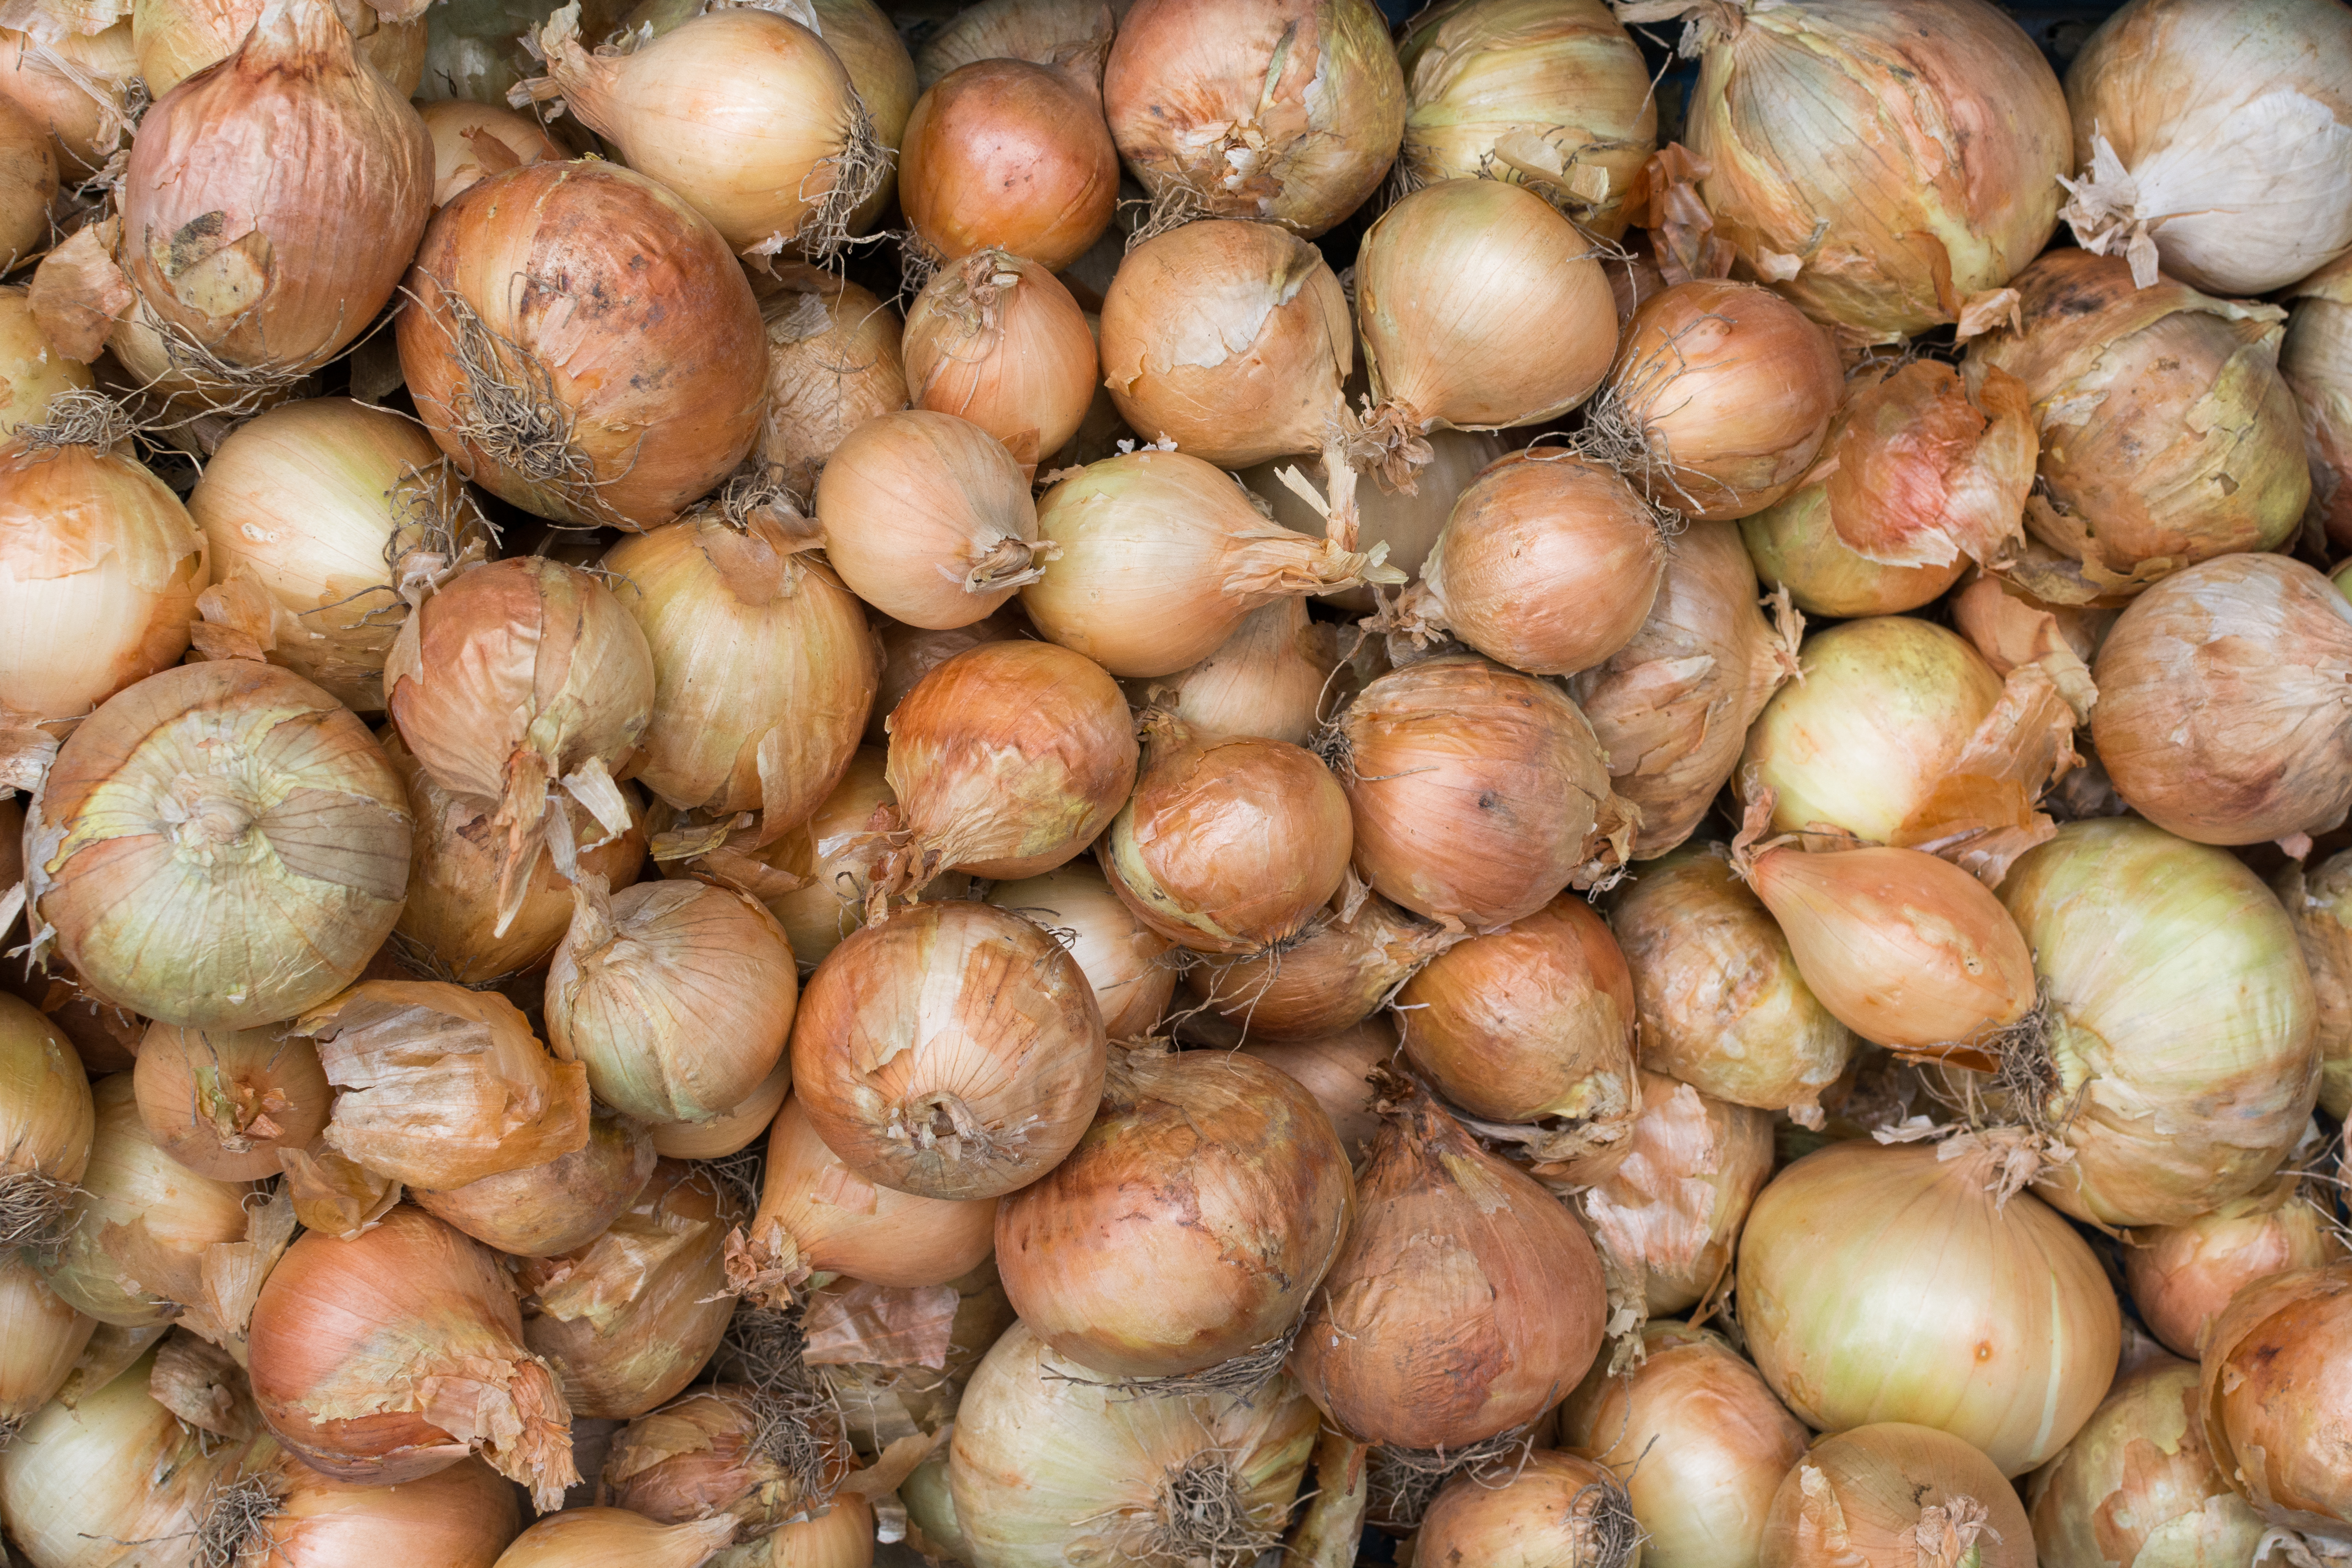 Onions on onions on onions